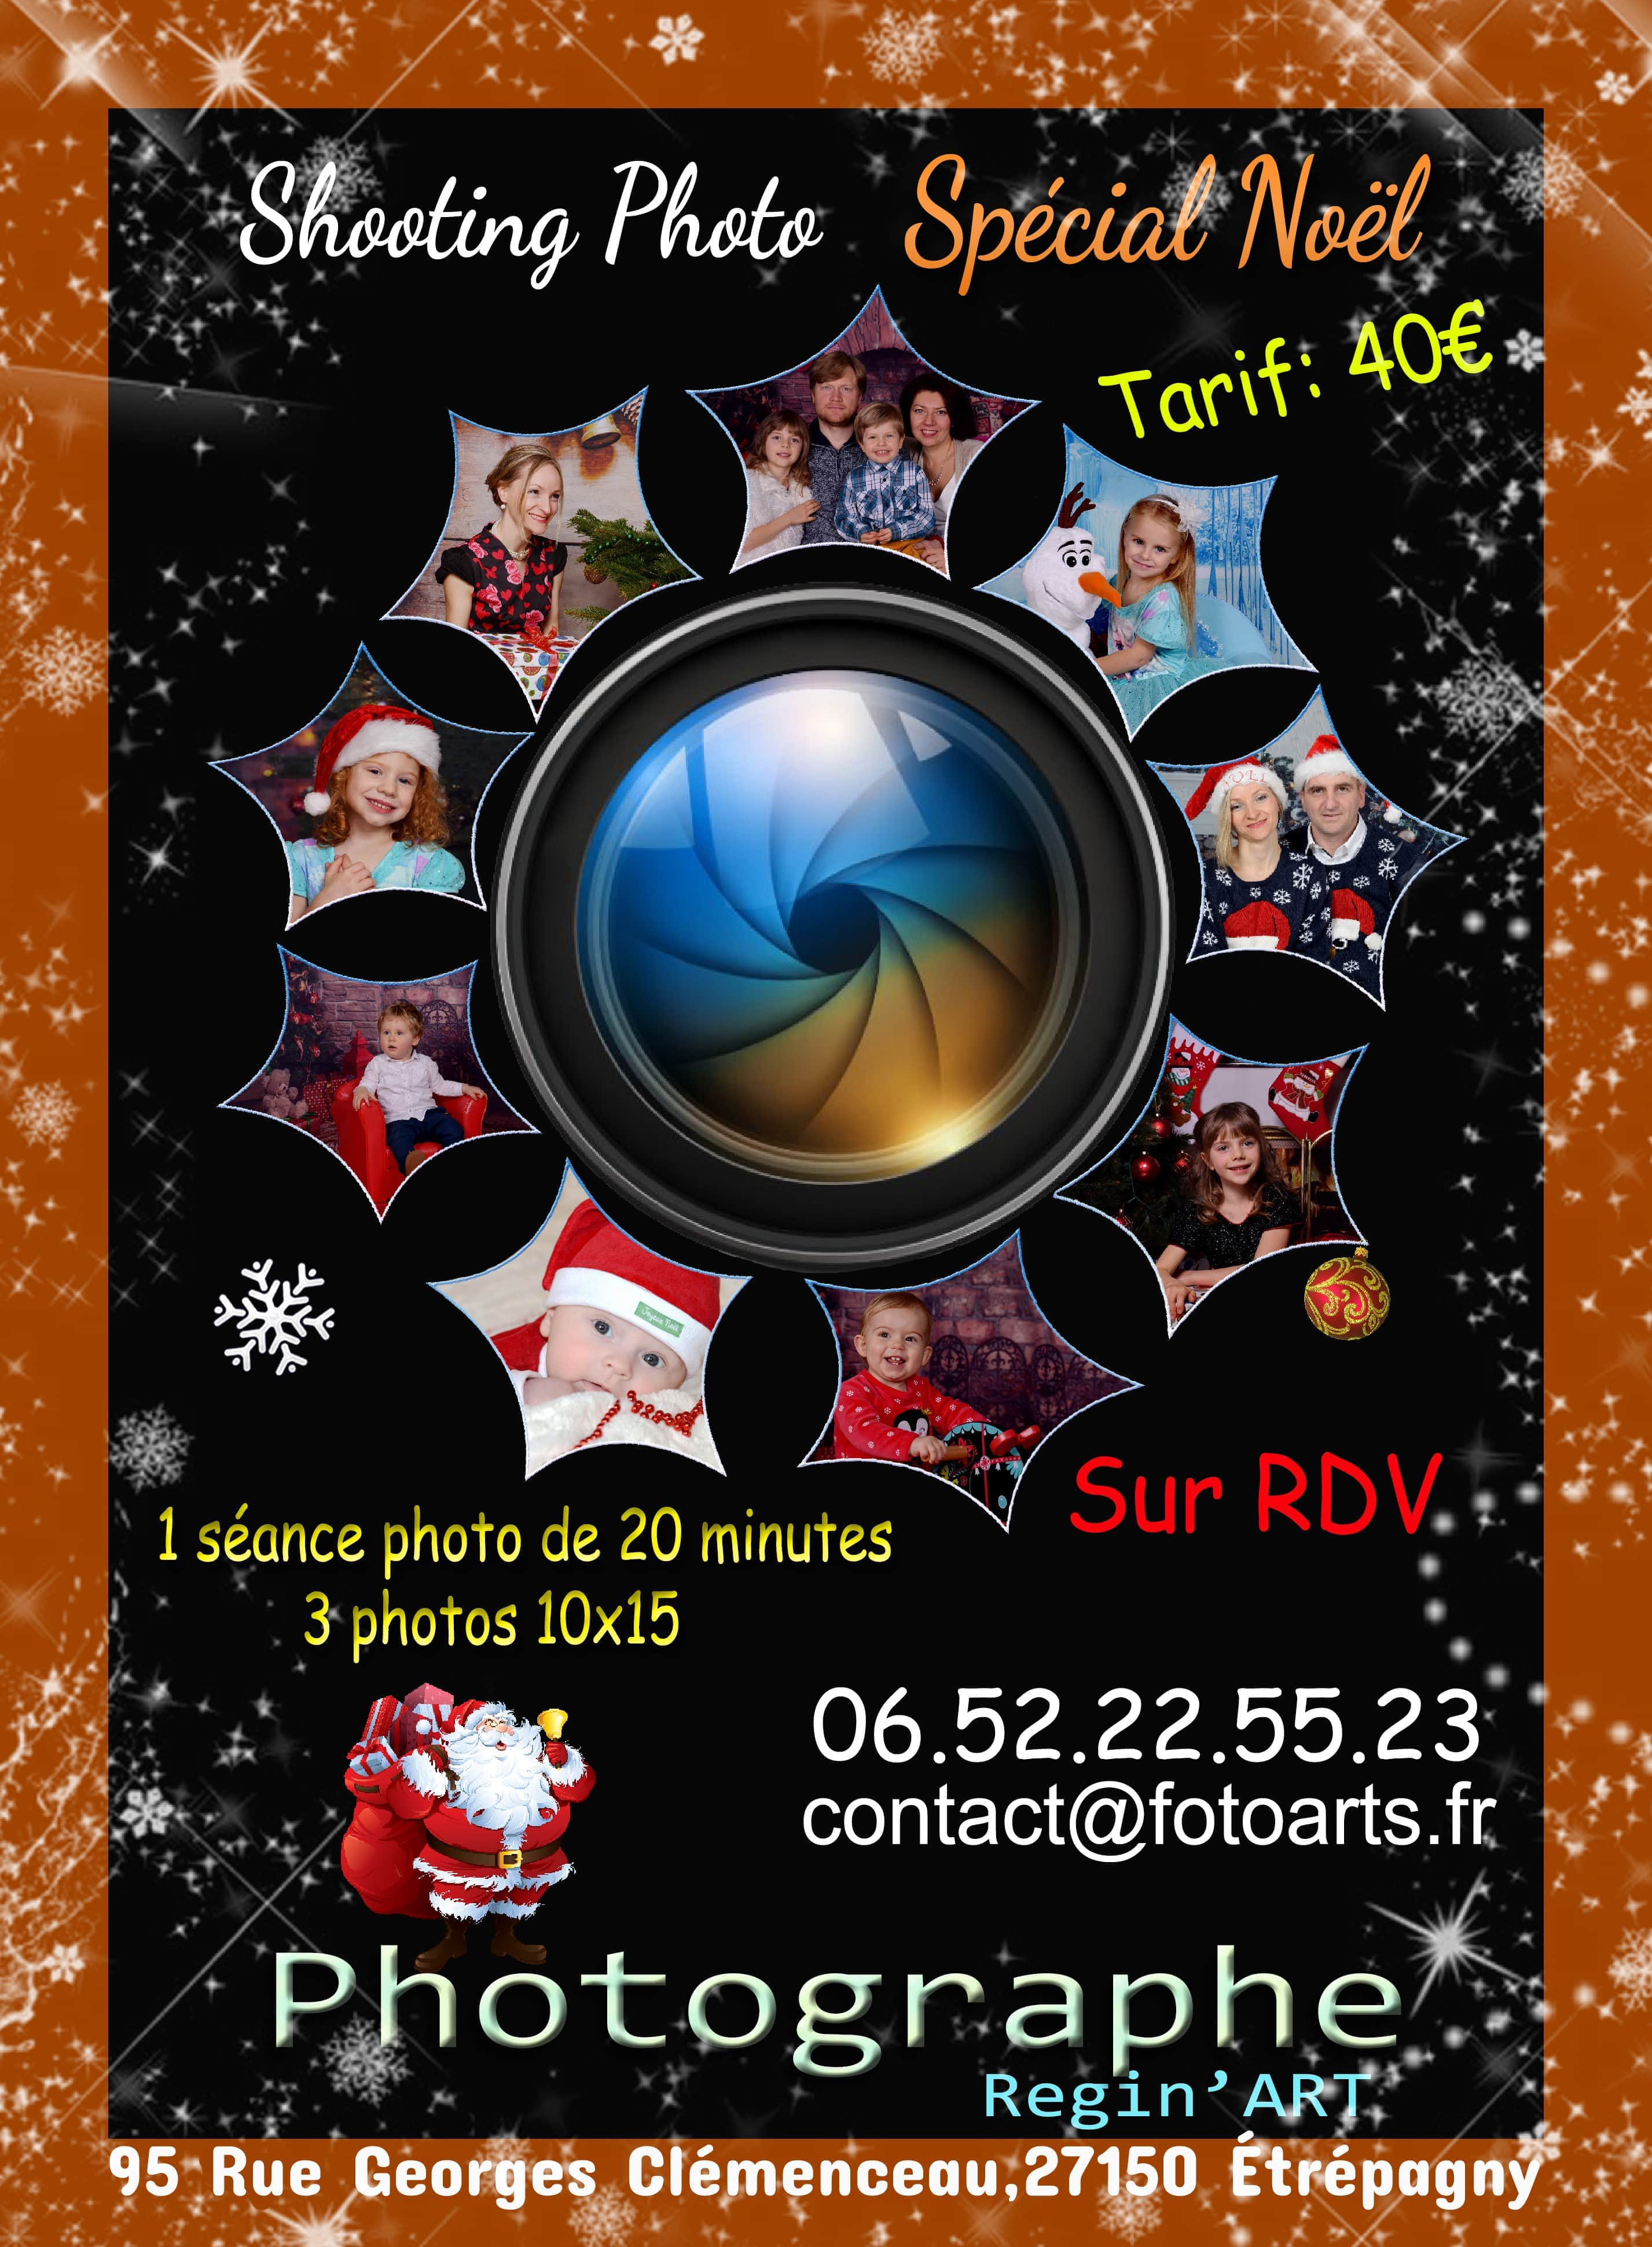 shooting photo spécial noel